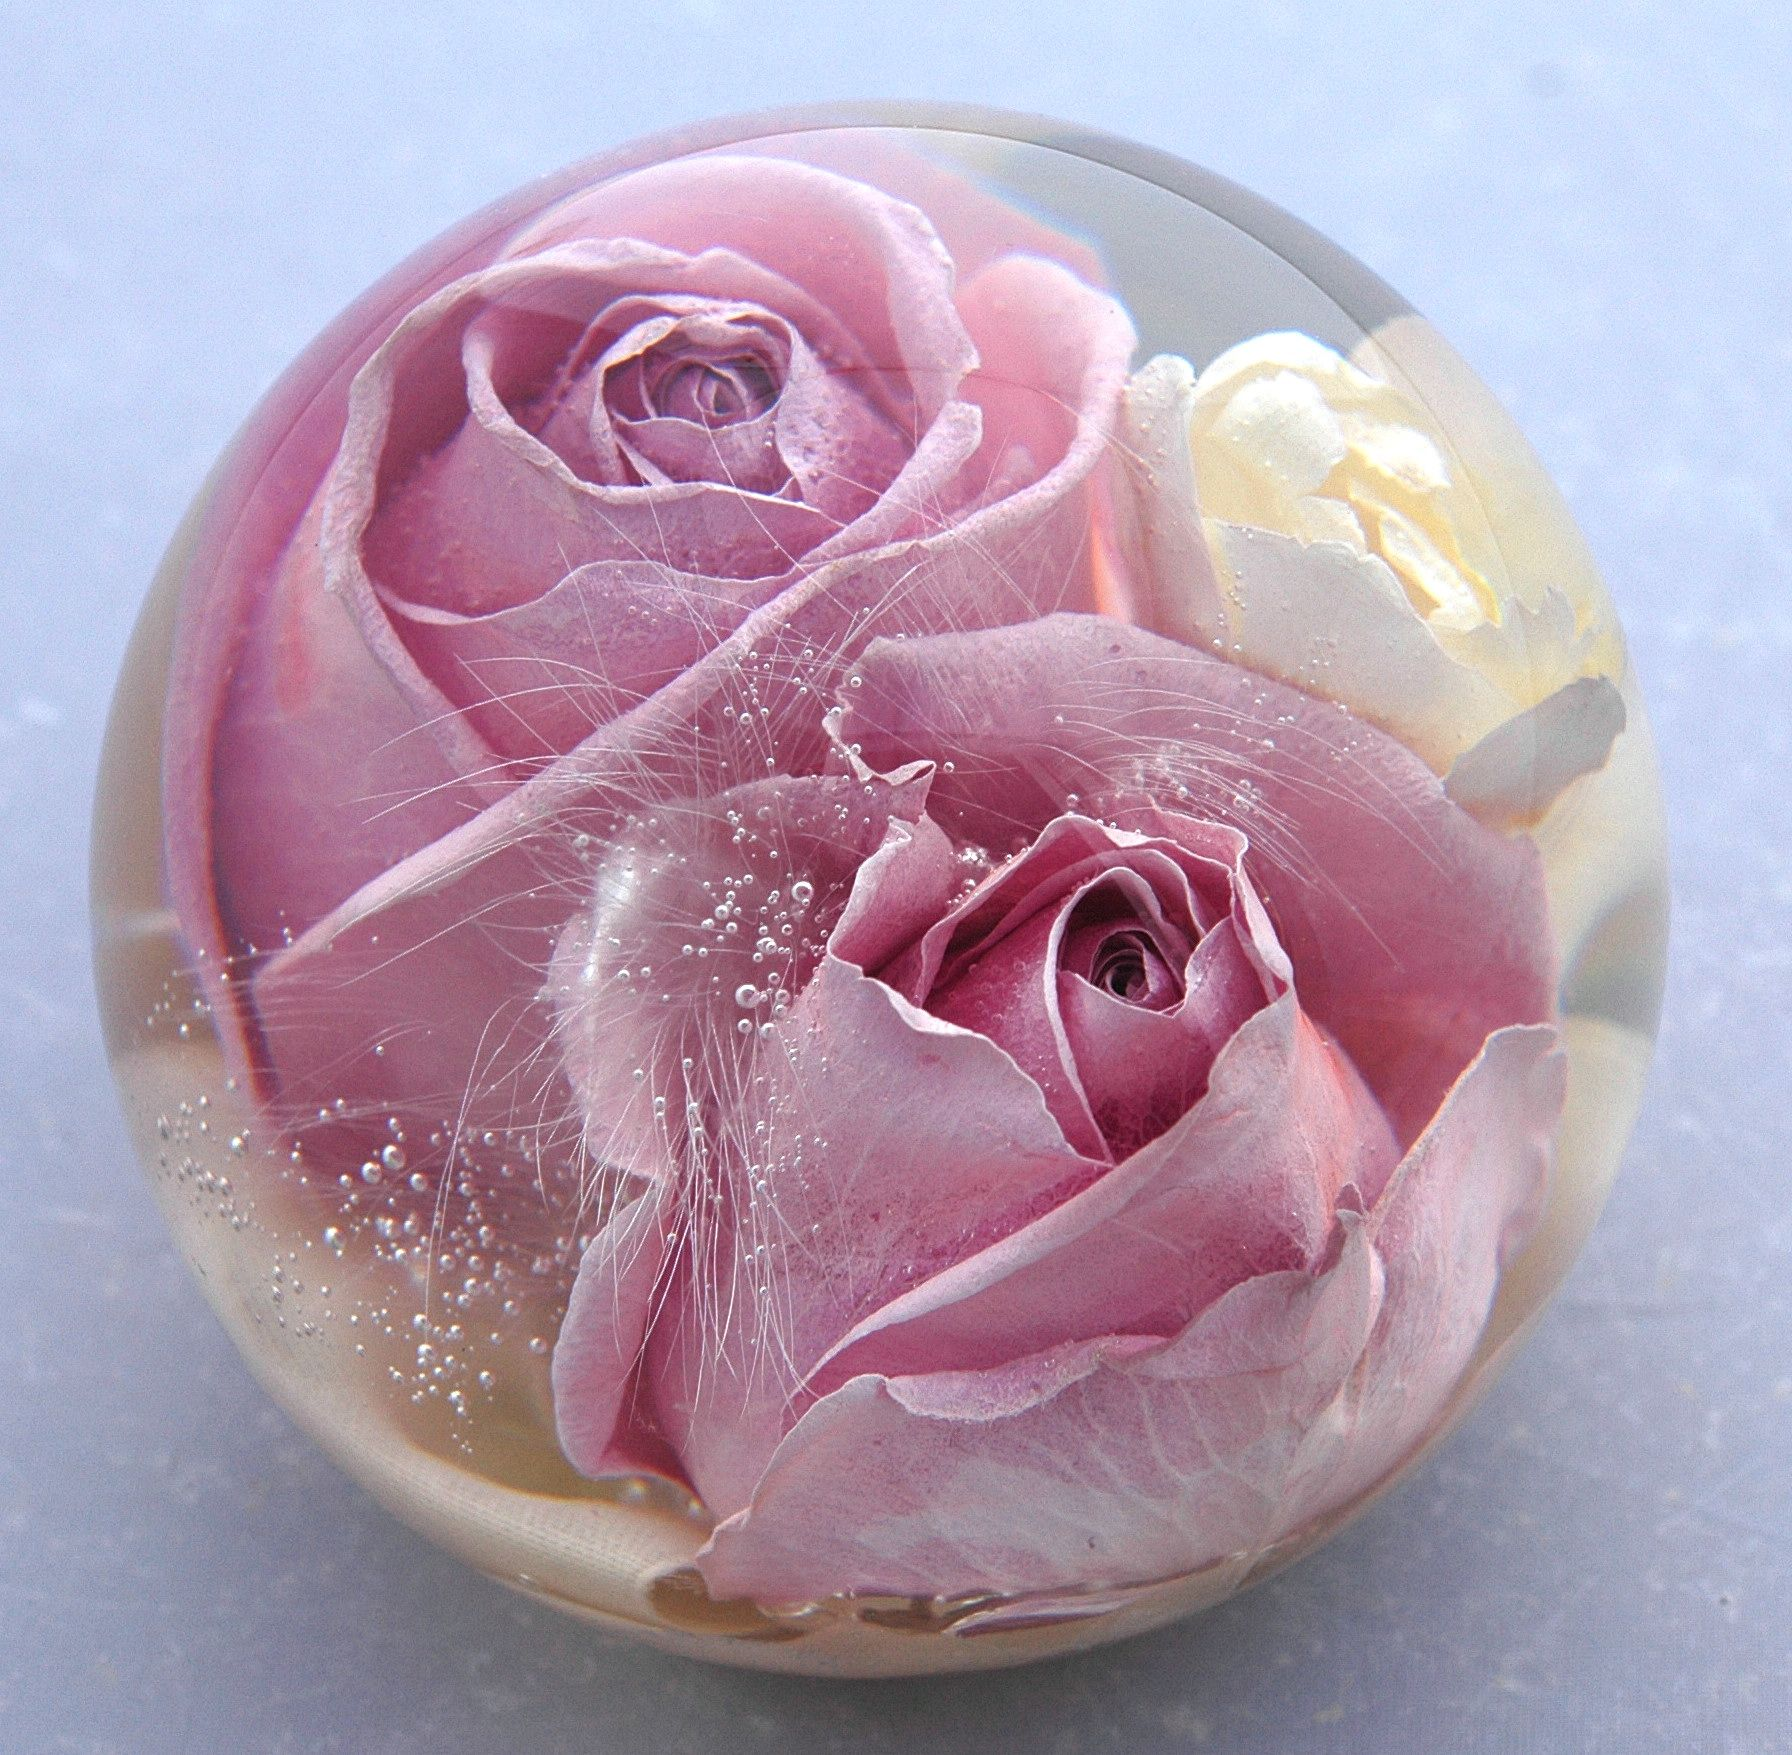 35 Mixed Luxury Flower Paperweight Priced At 16995 A Perfect